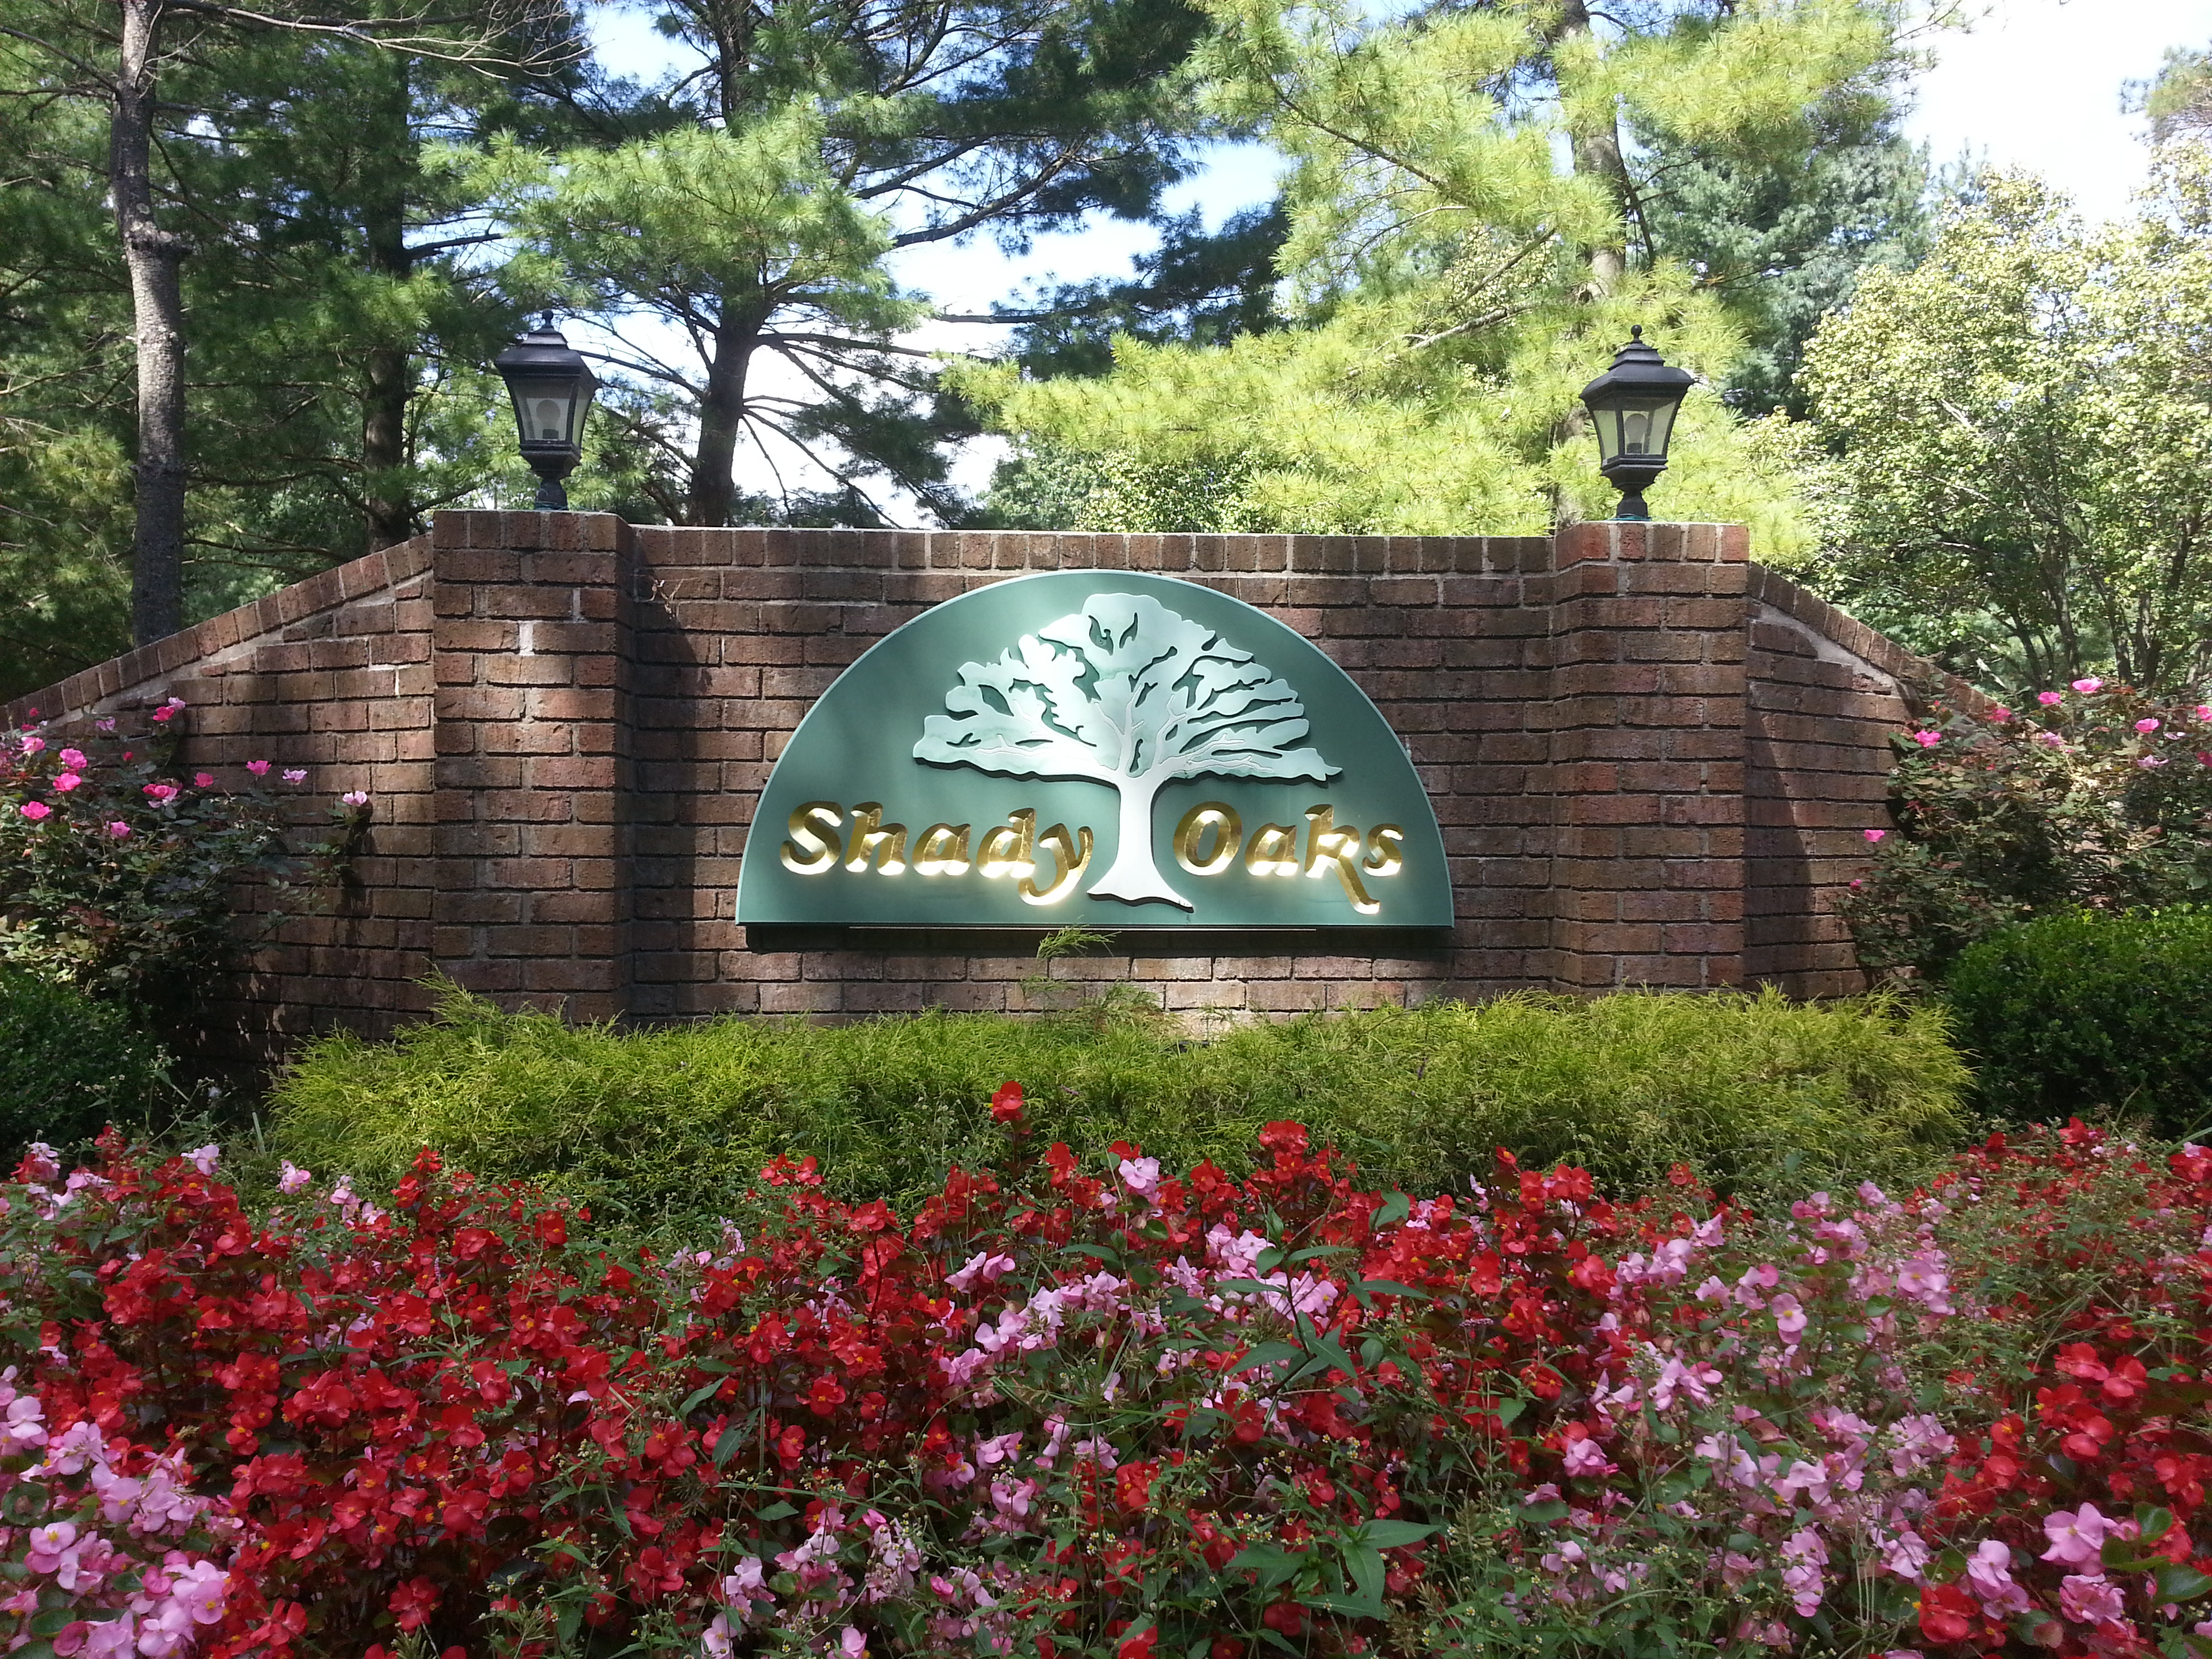 Shady Oaks, located off of W. Front Street in Middletown, is a community for active adults 55 and up